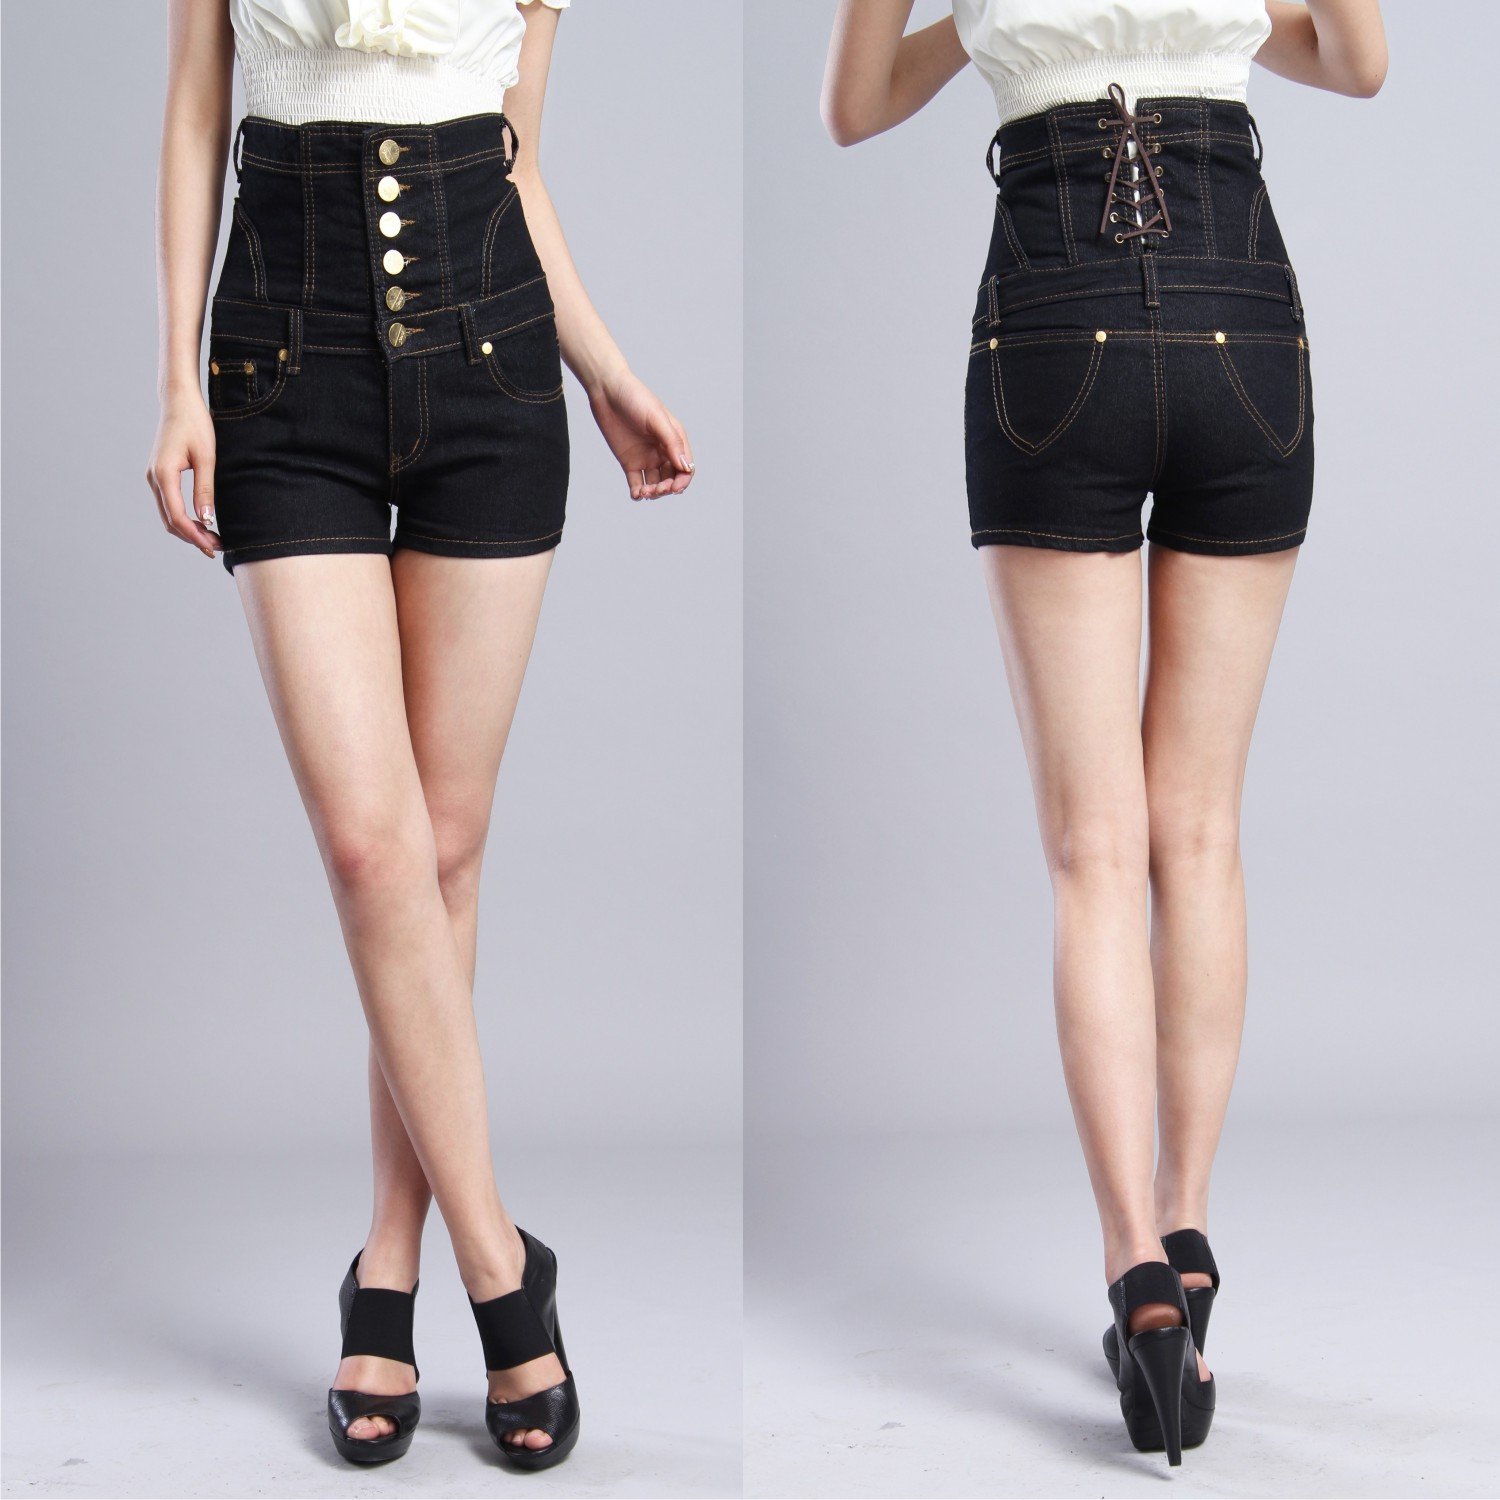 High Waisted Shorts For Women - The Else